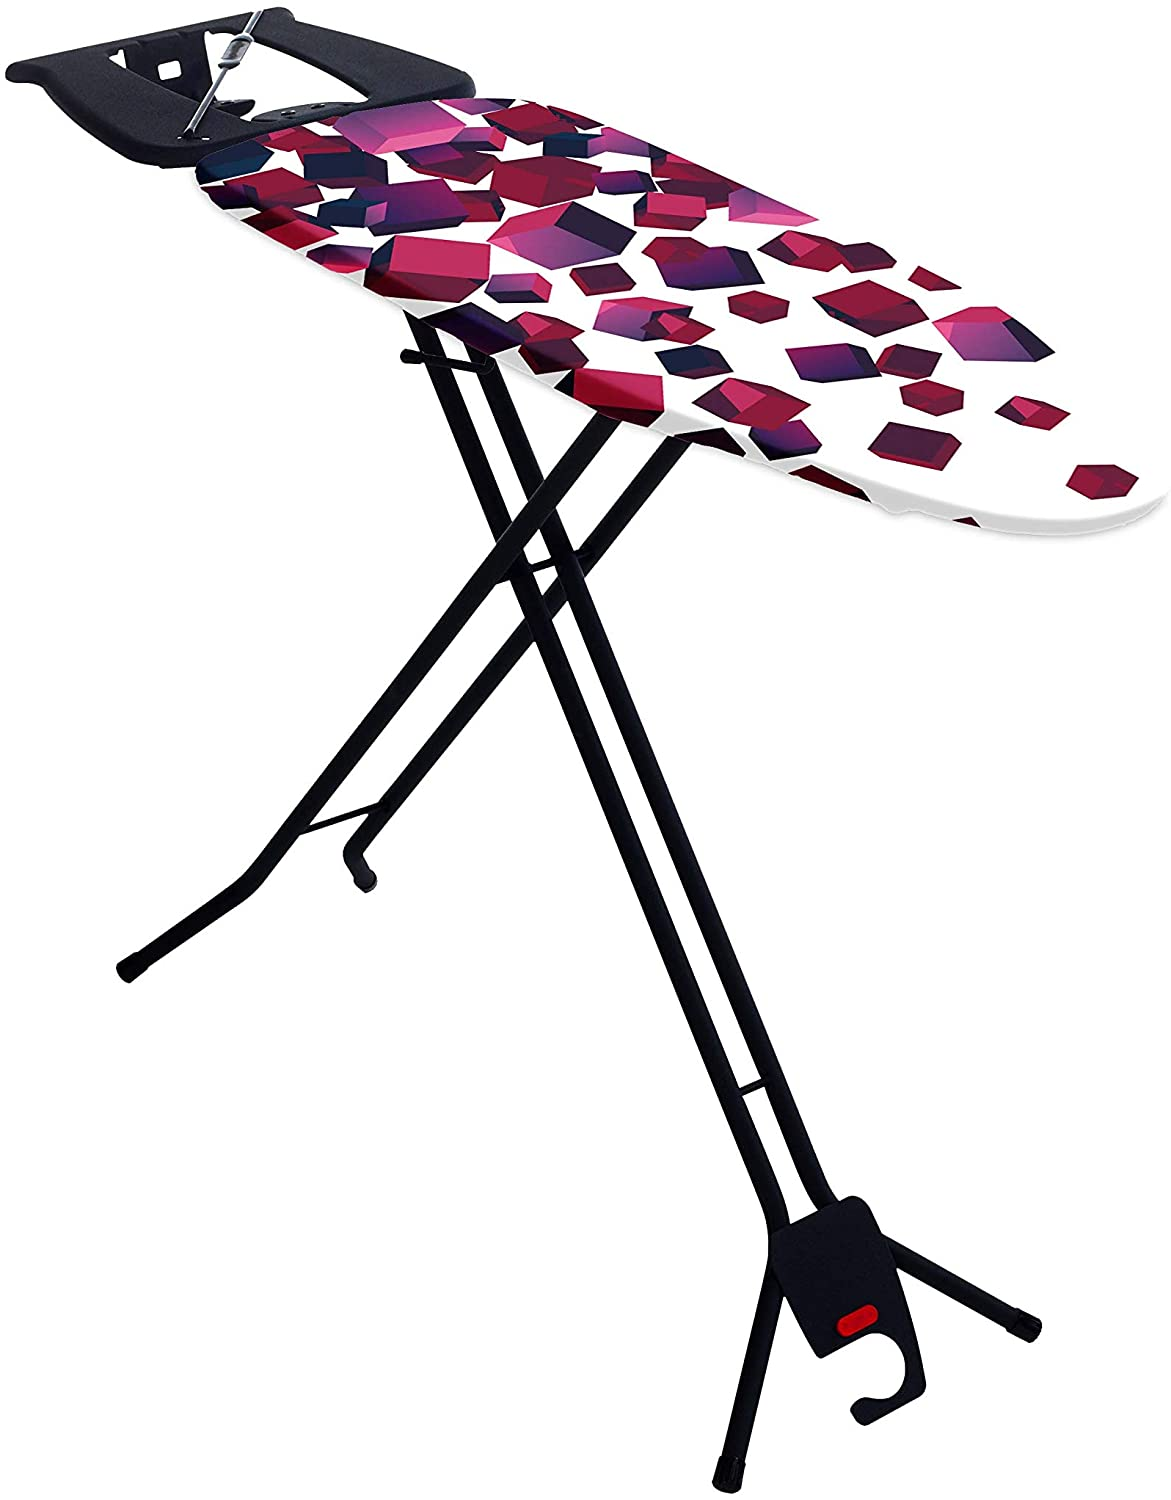 Mabel All items in Spring new work the store Home Space Saving Ironing Storage Board Adjustable Easy